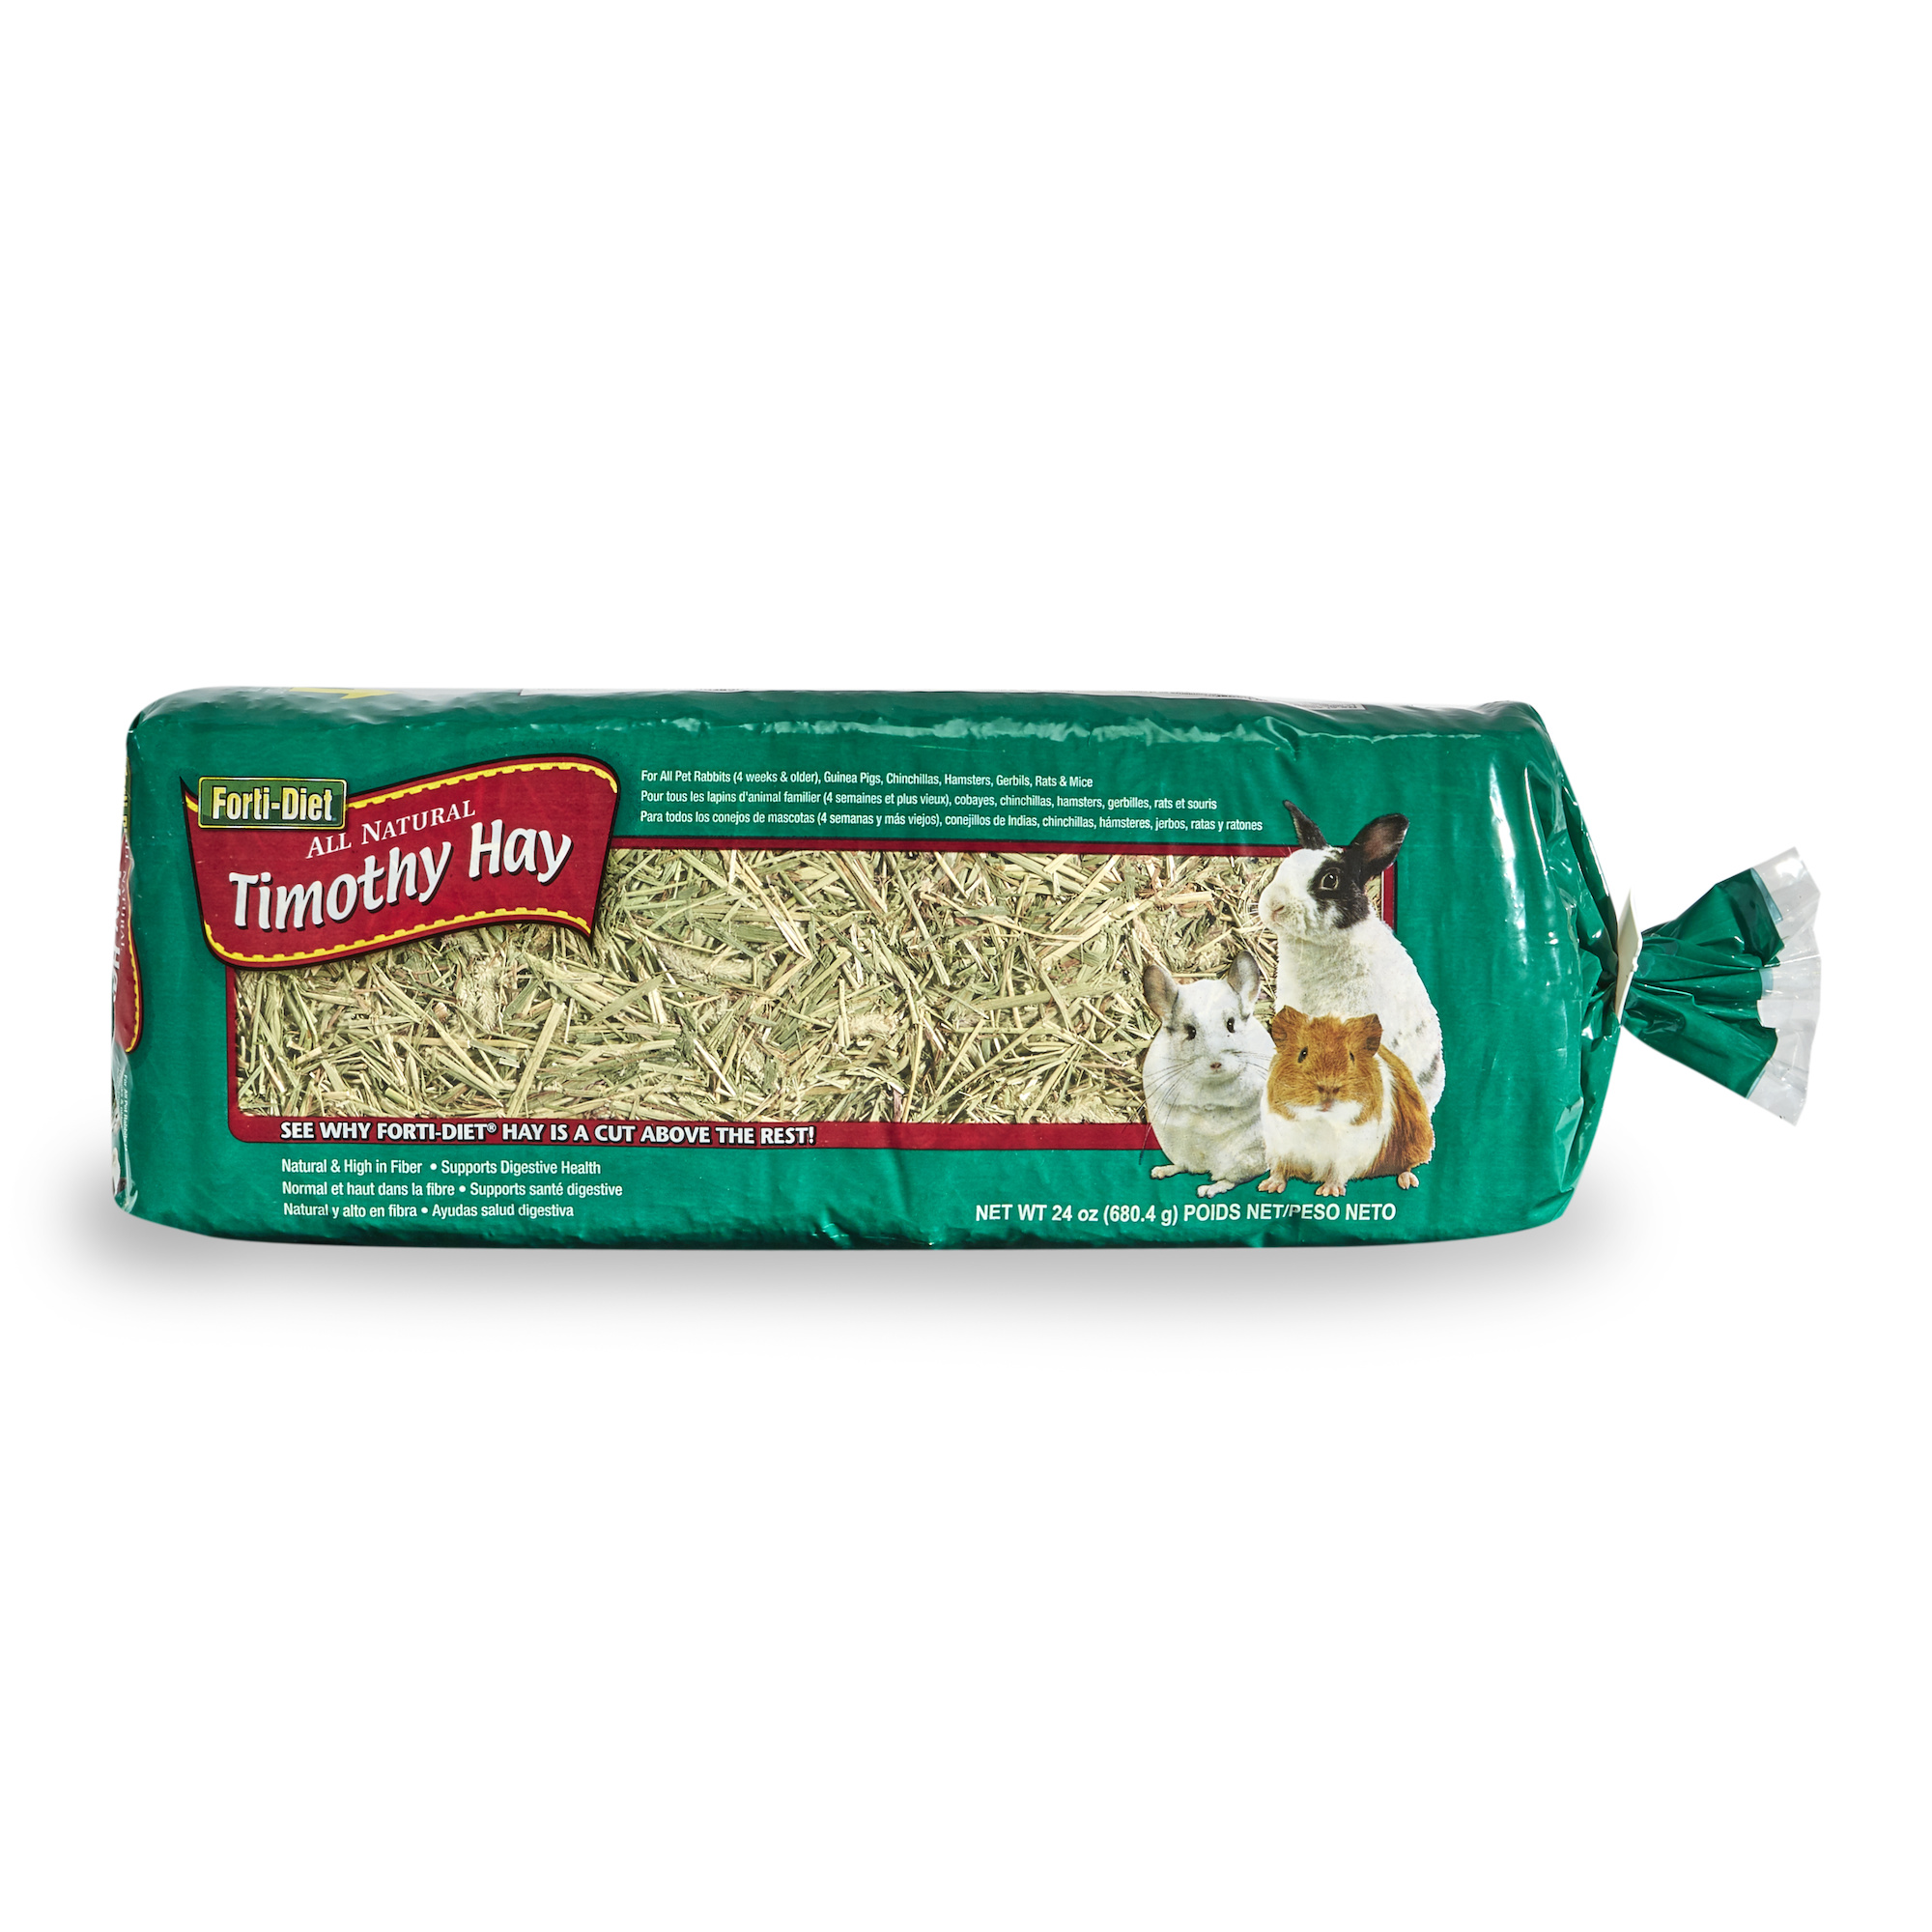 Forti Diet Timothy Hay Small Animal Food and Treat, 24 oz